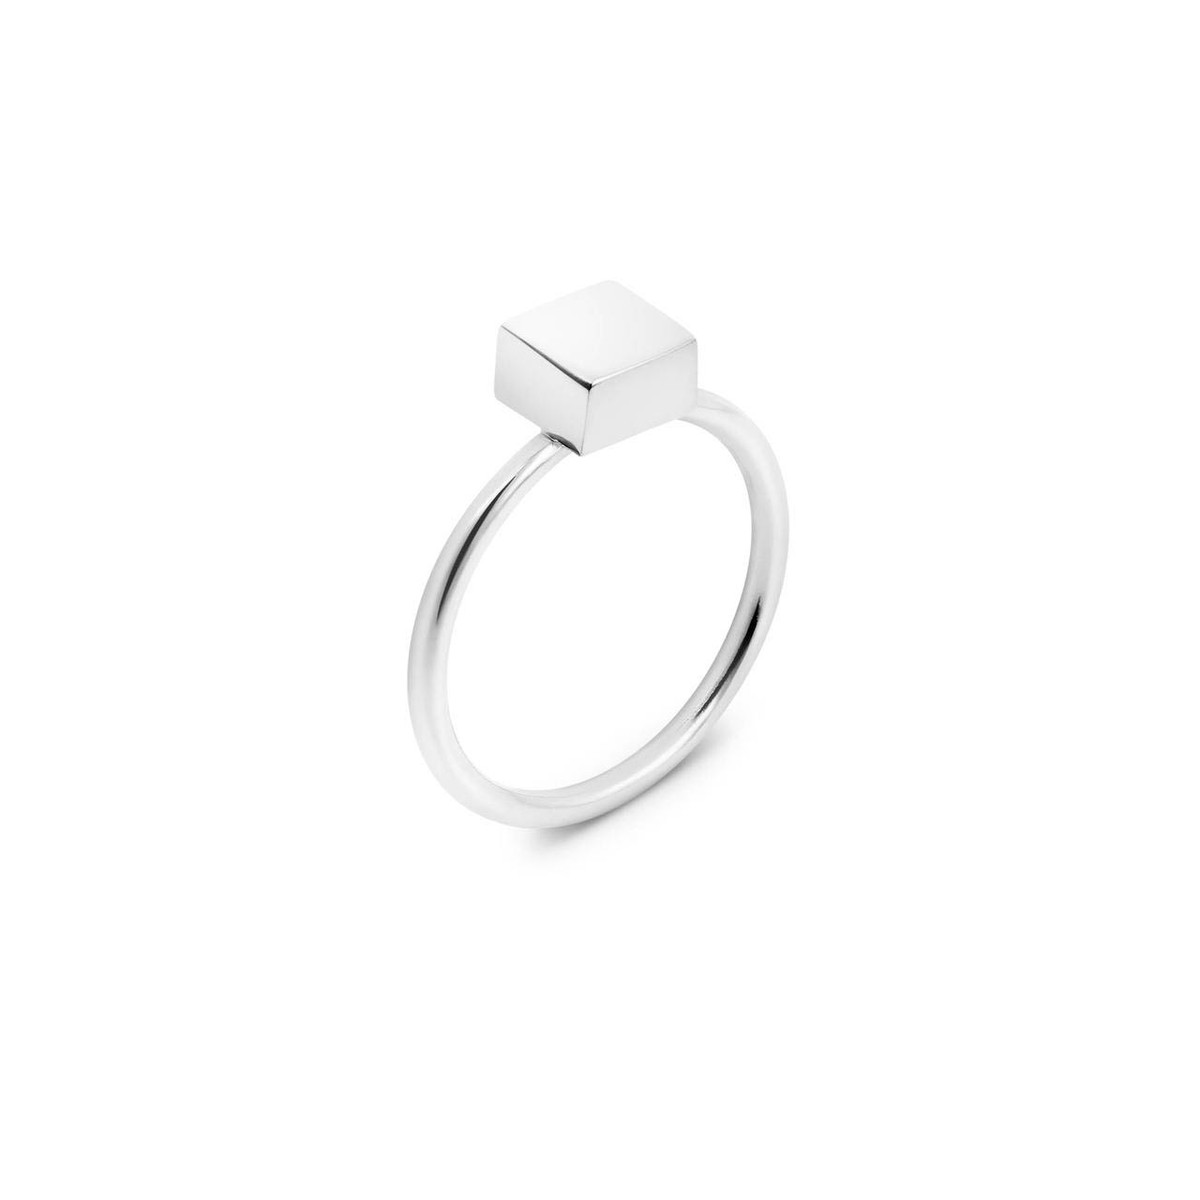 Joidart Toujours Square Silver Ring